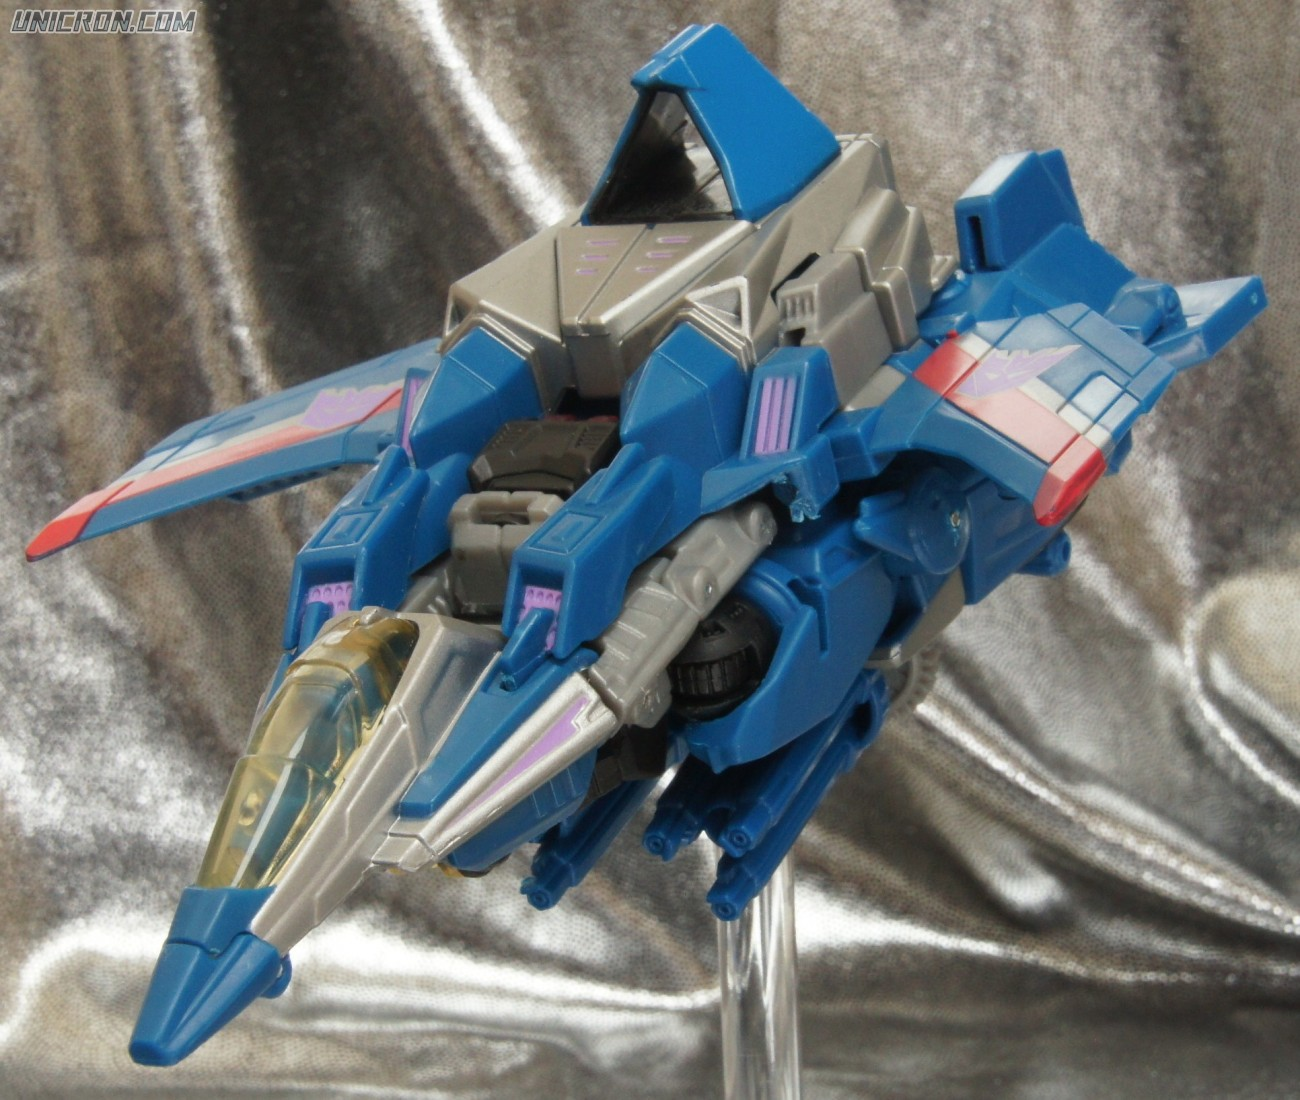 Transformers Generations Thundercracker (Fall of Cybertron) toy